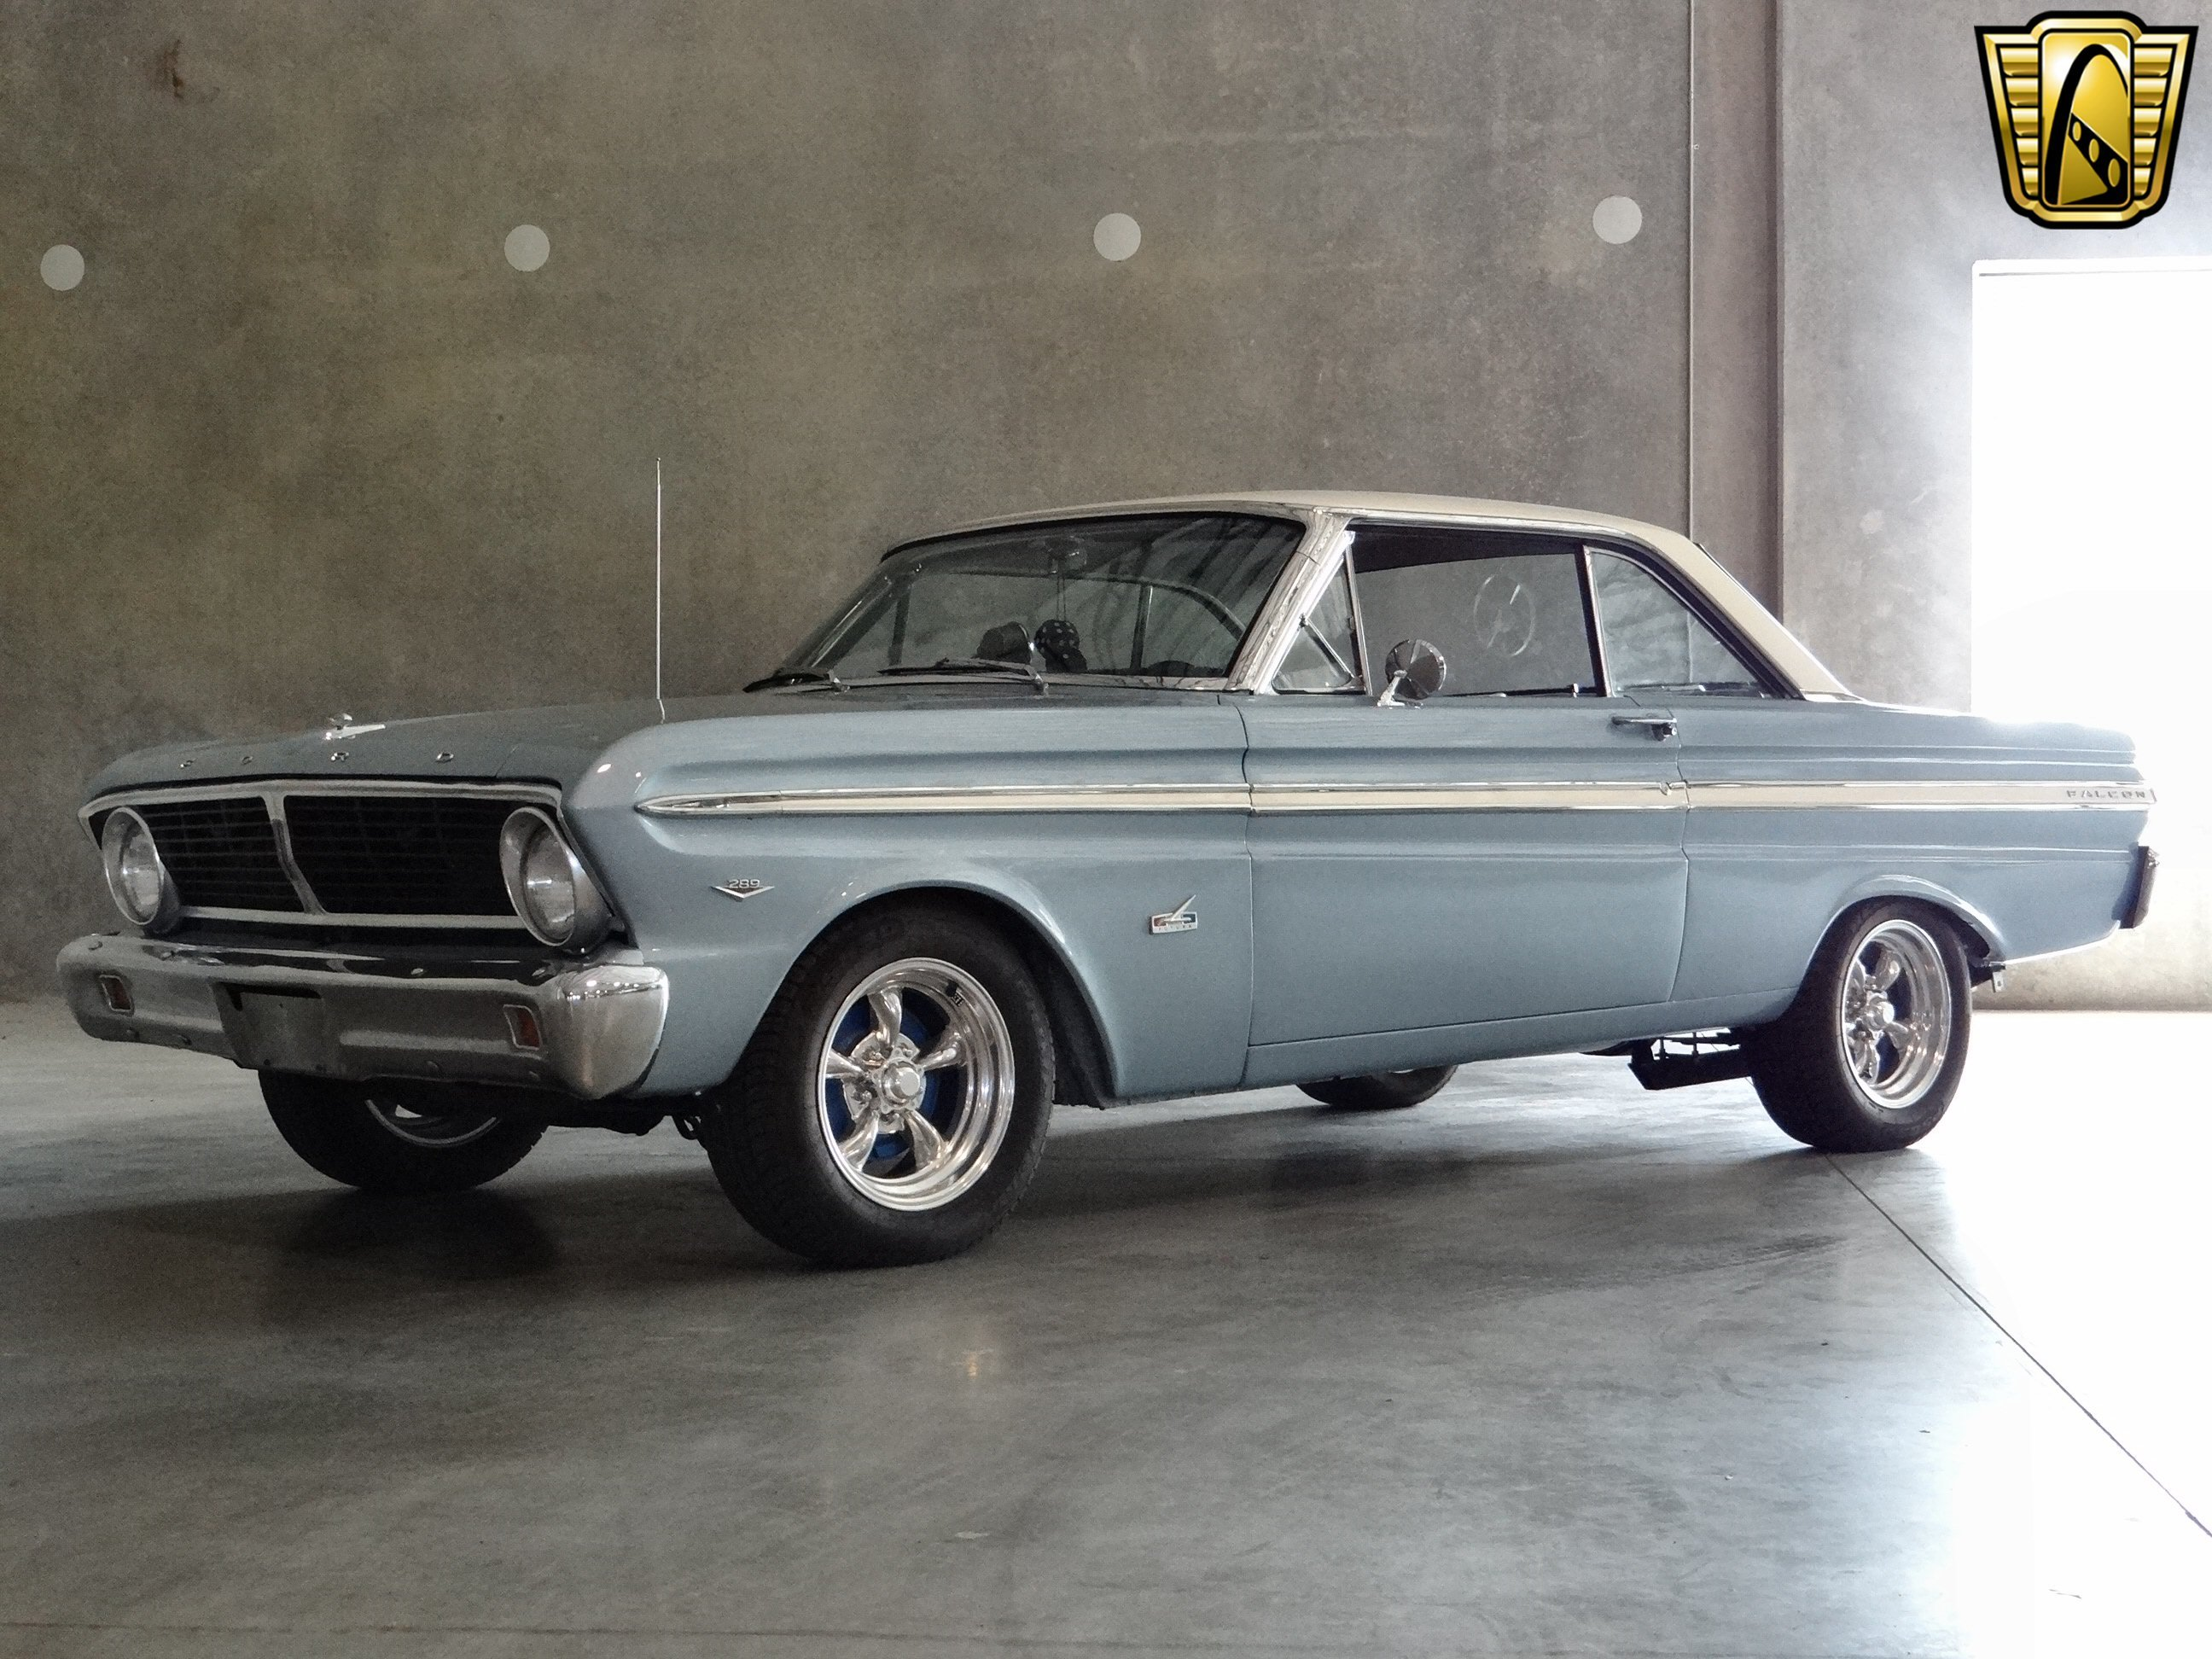 1965 Ford Falcon Futura muscle hot rod rods classic  35